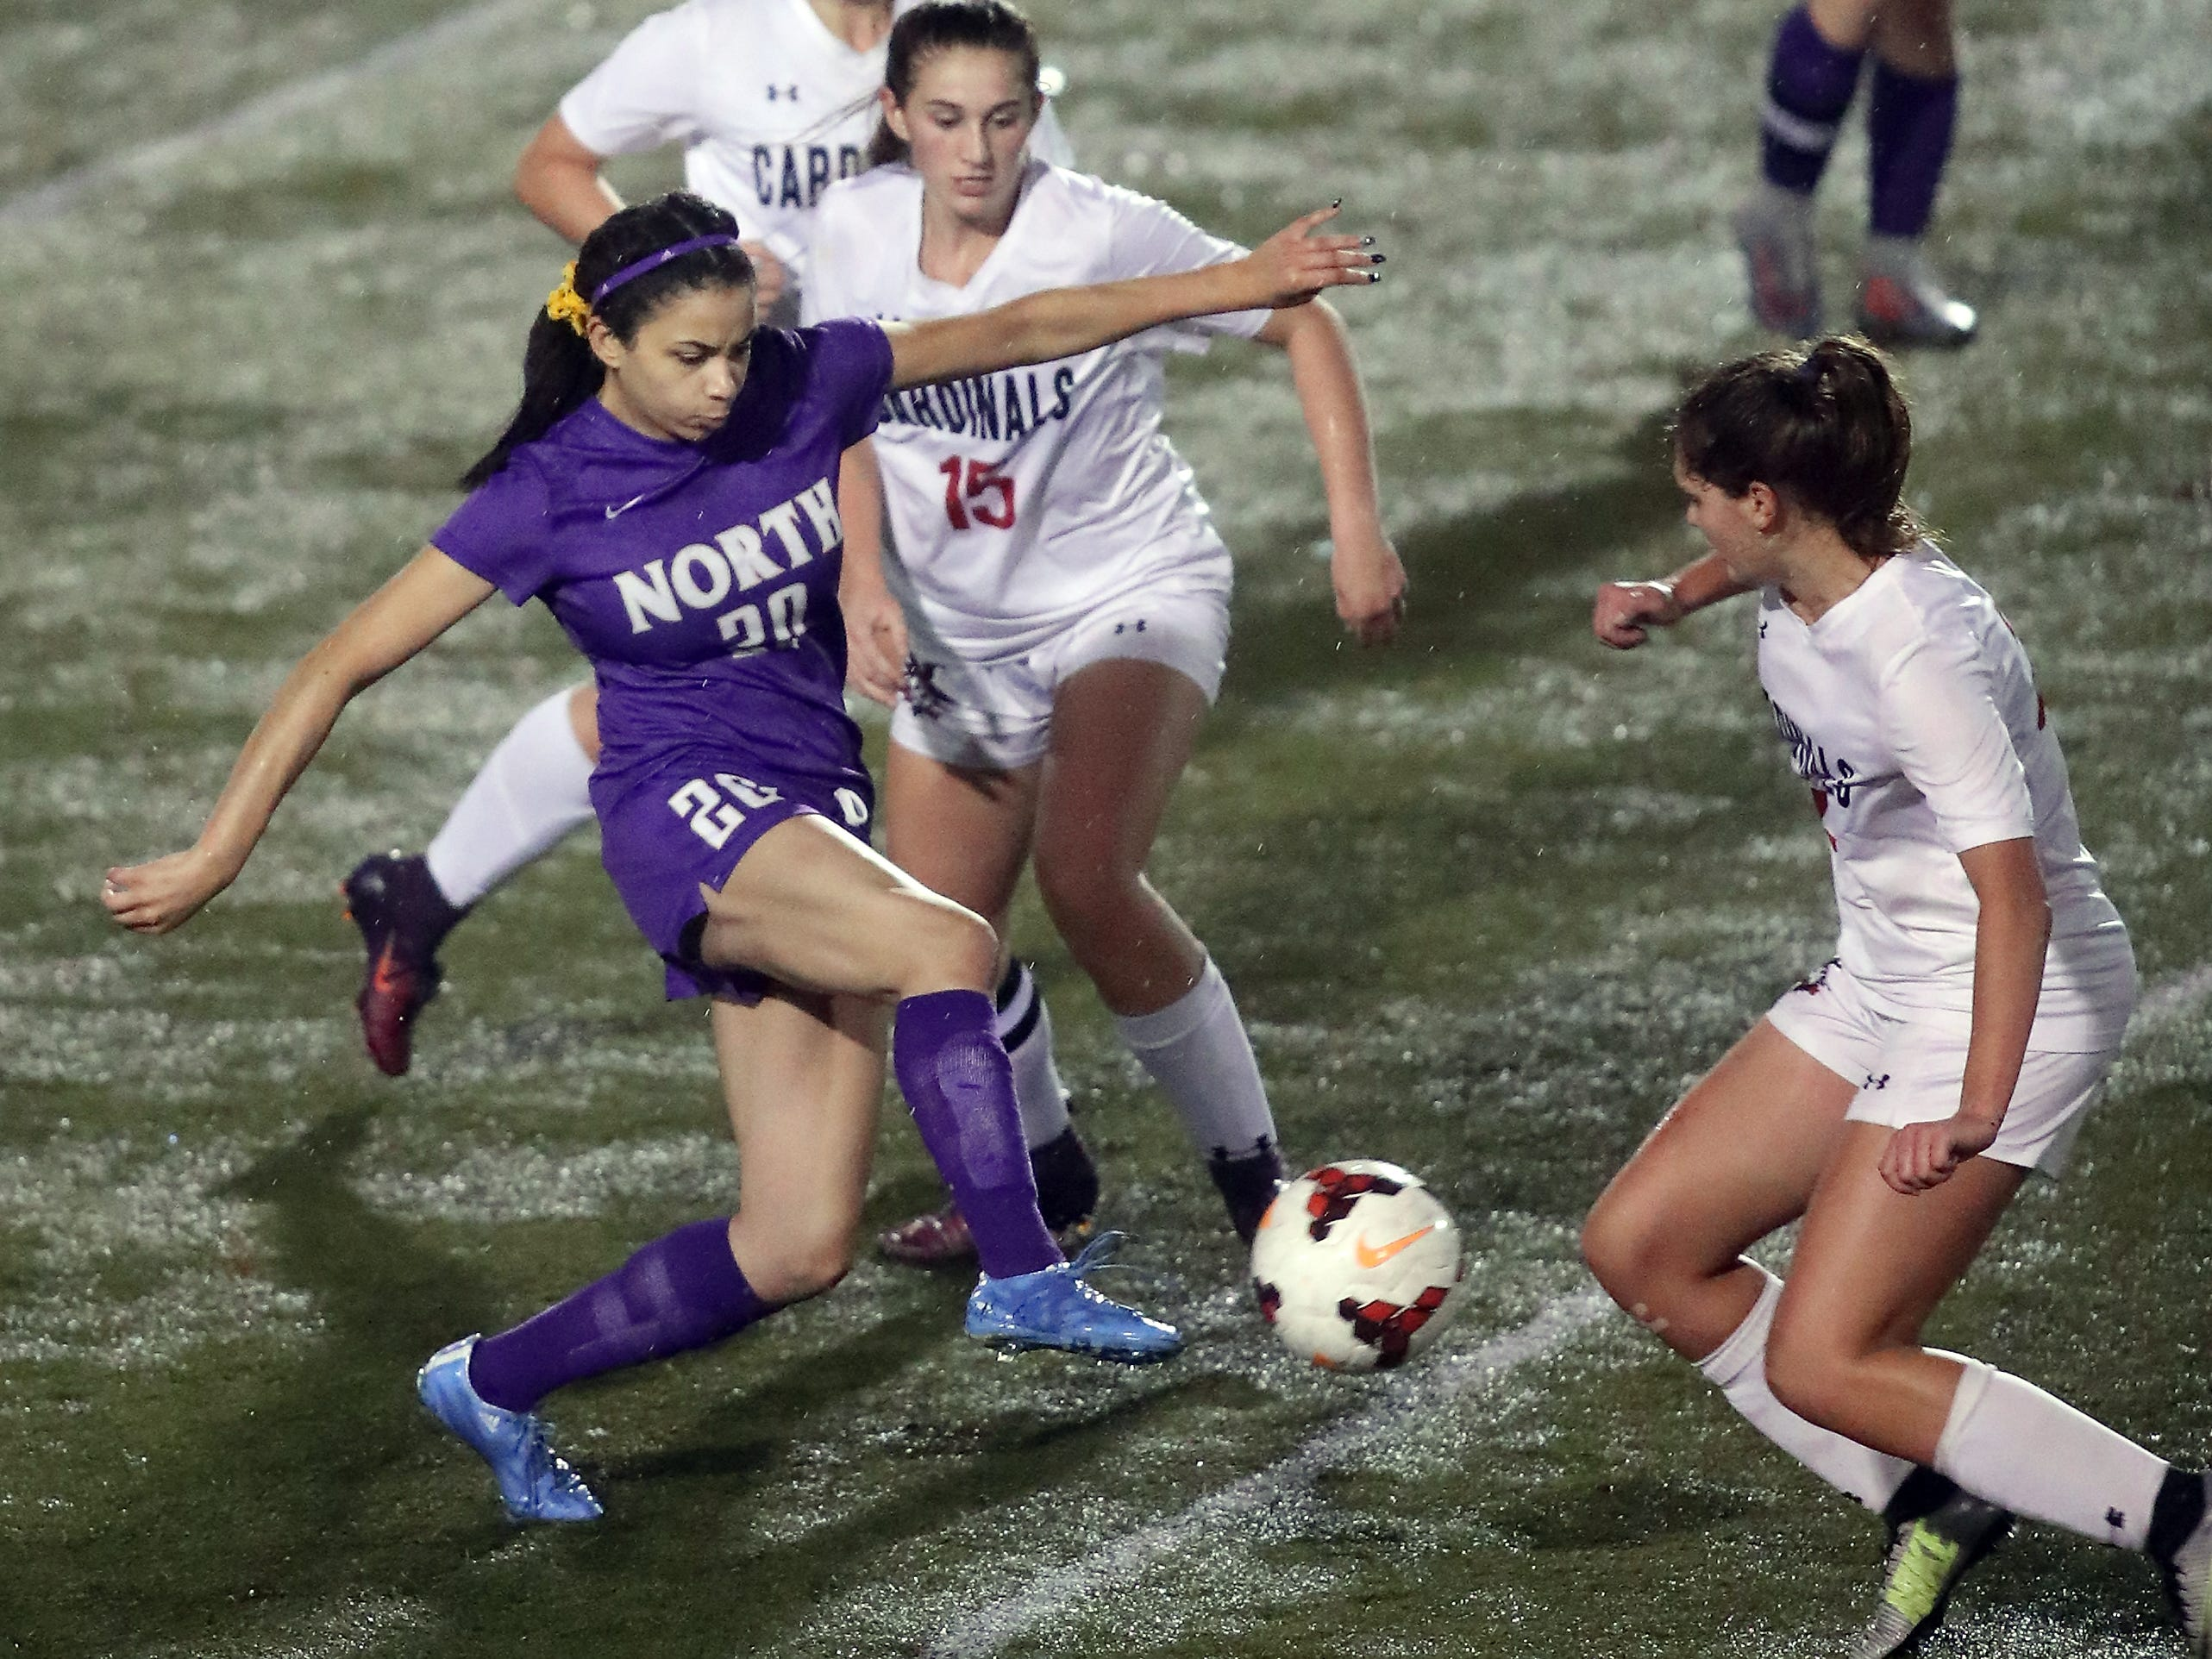 North Kitsap's Isla Lester (left) moves the ball through Orting defenders Katie Harvie (center) and Hailey Hansen (right) in Poulsbo on Tuesday, October 30, 2018.